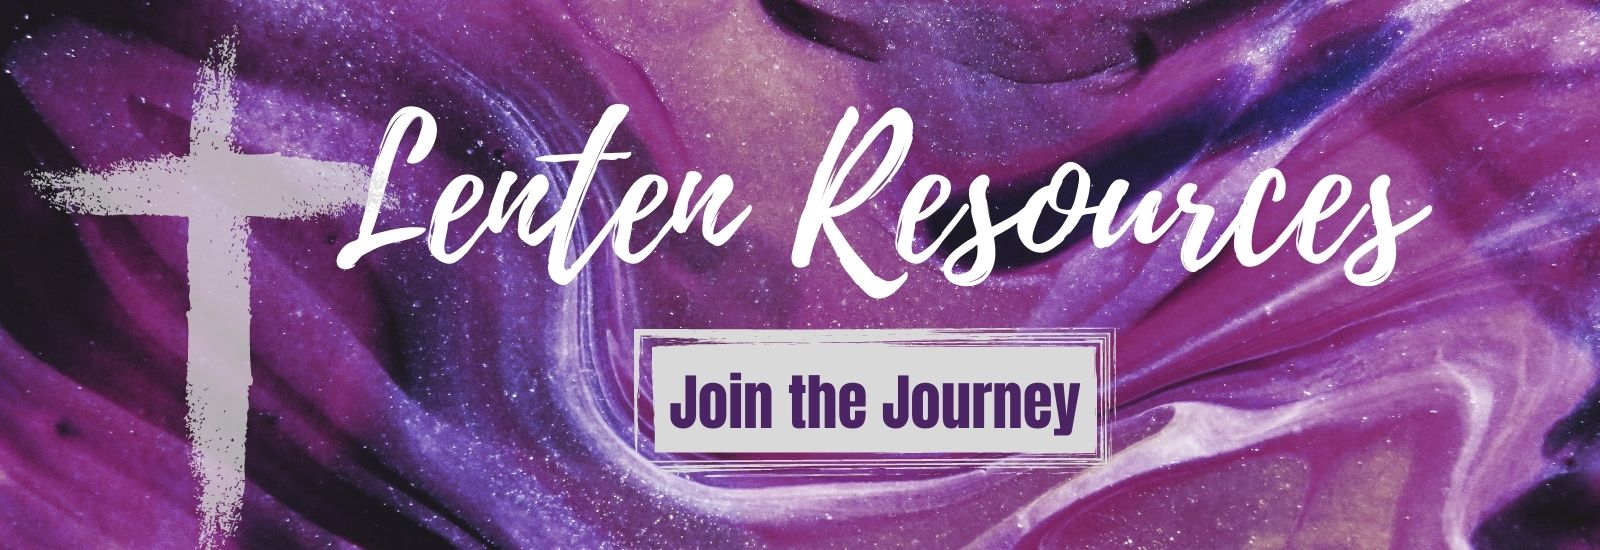 2021 Lenten Resources